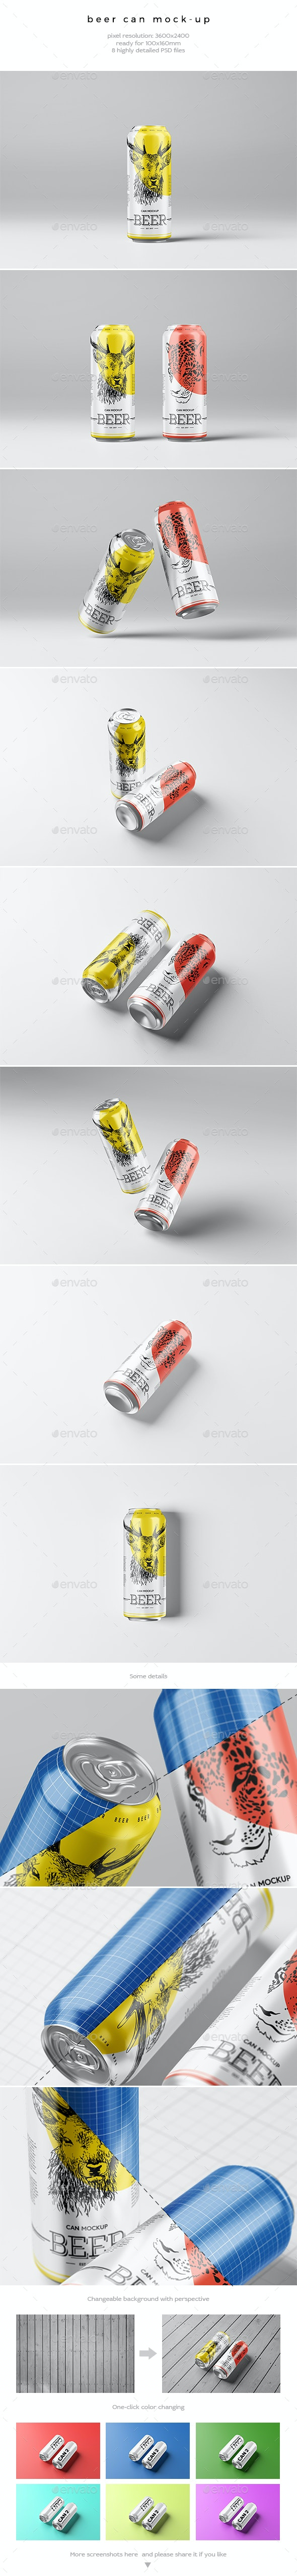 Beer Can Mock-Up - Food and Drink Packaging